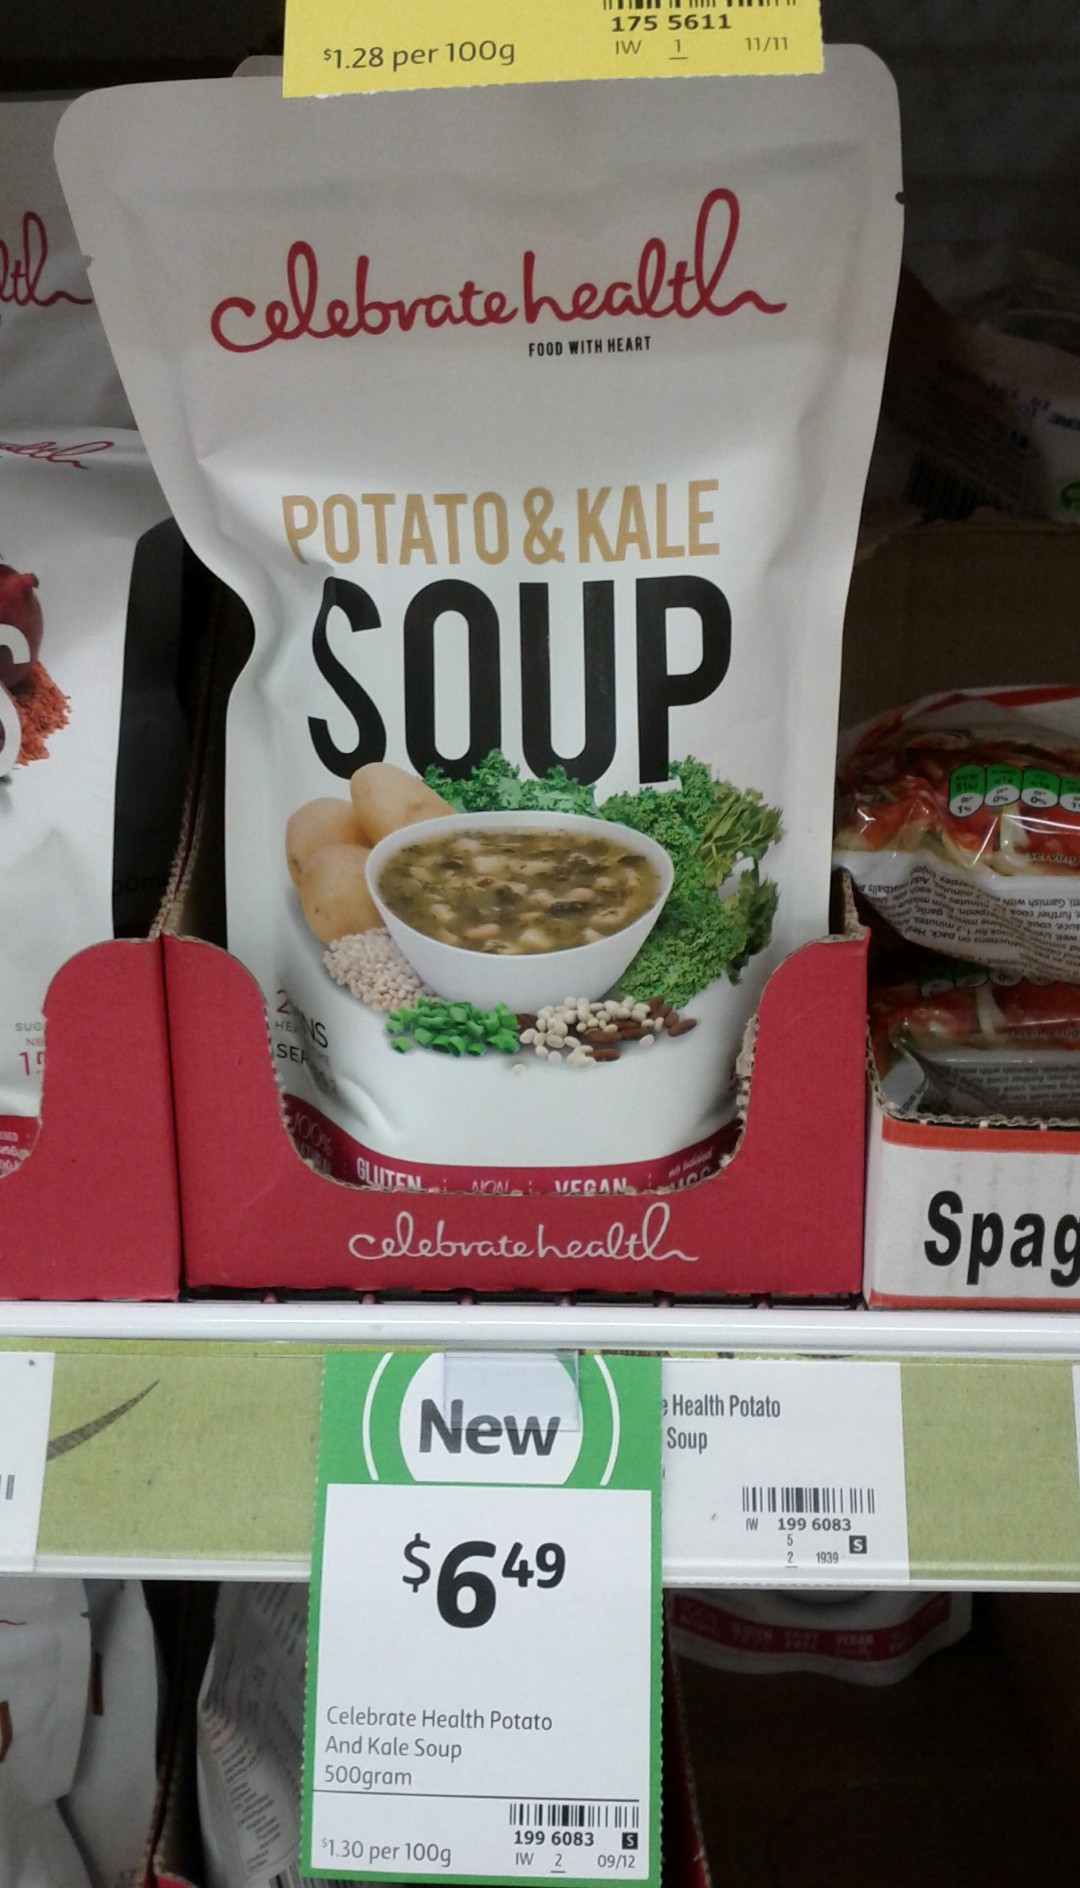 Celebrate Health 500g Potato & Kale Soup